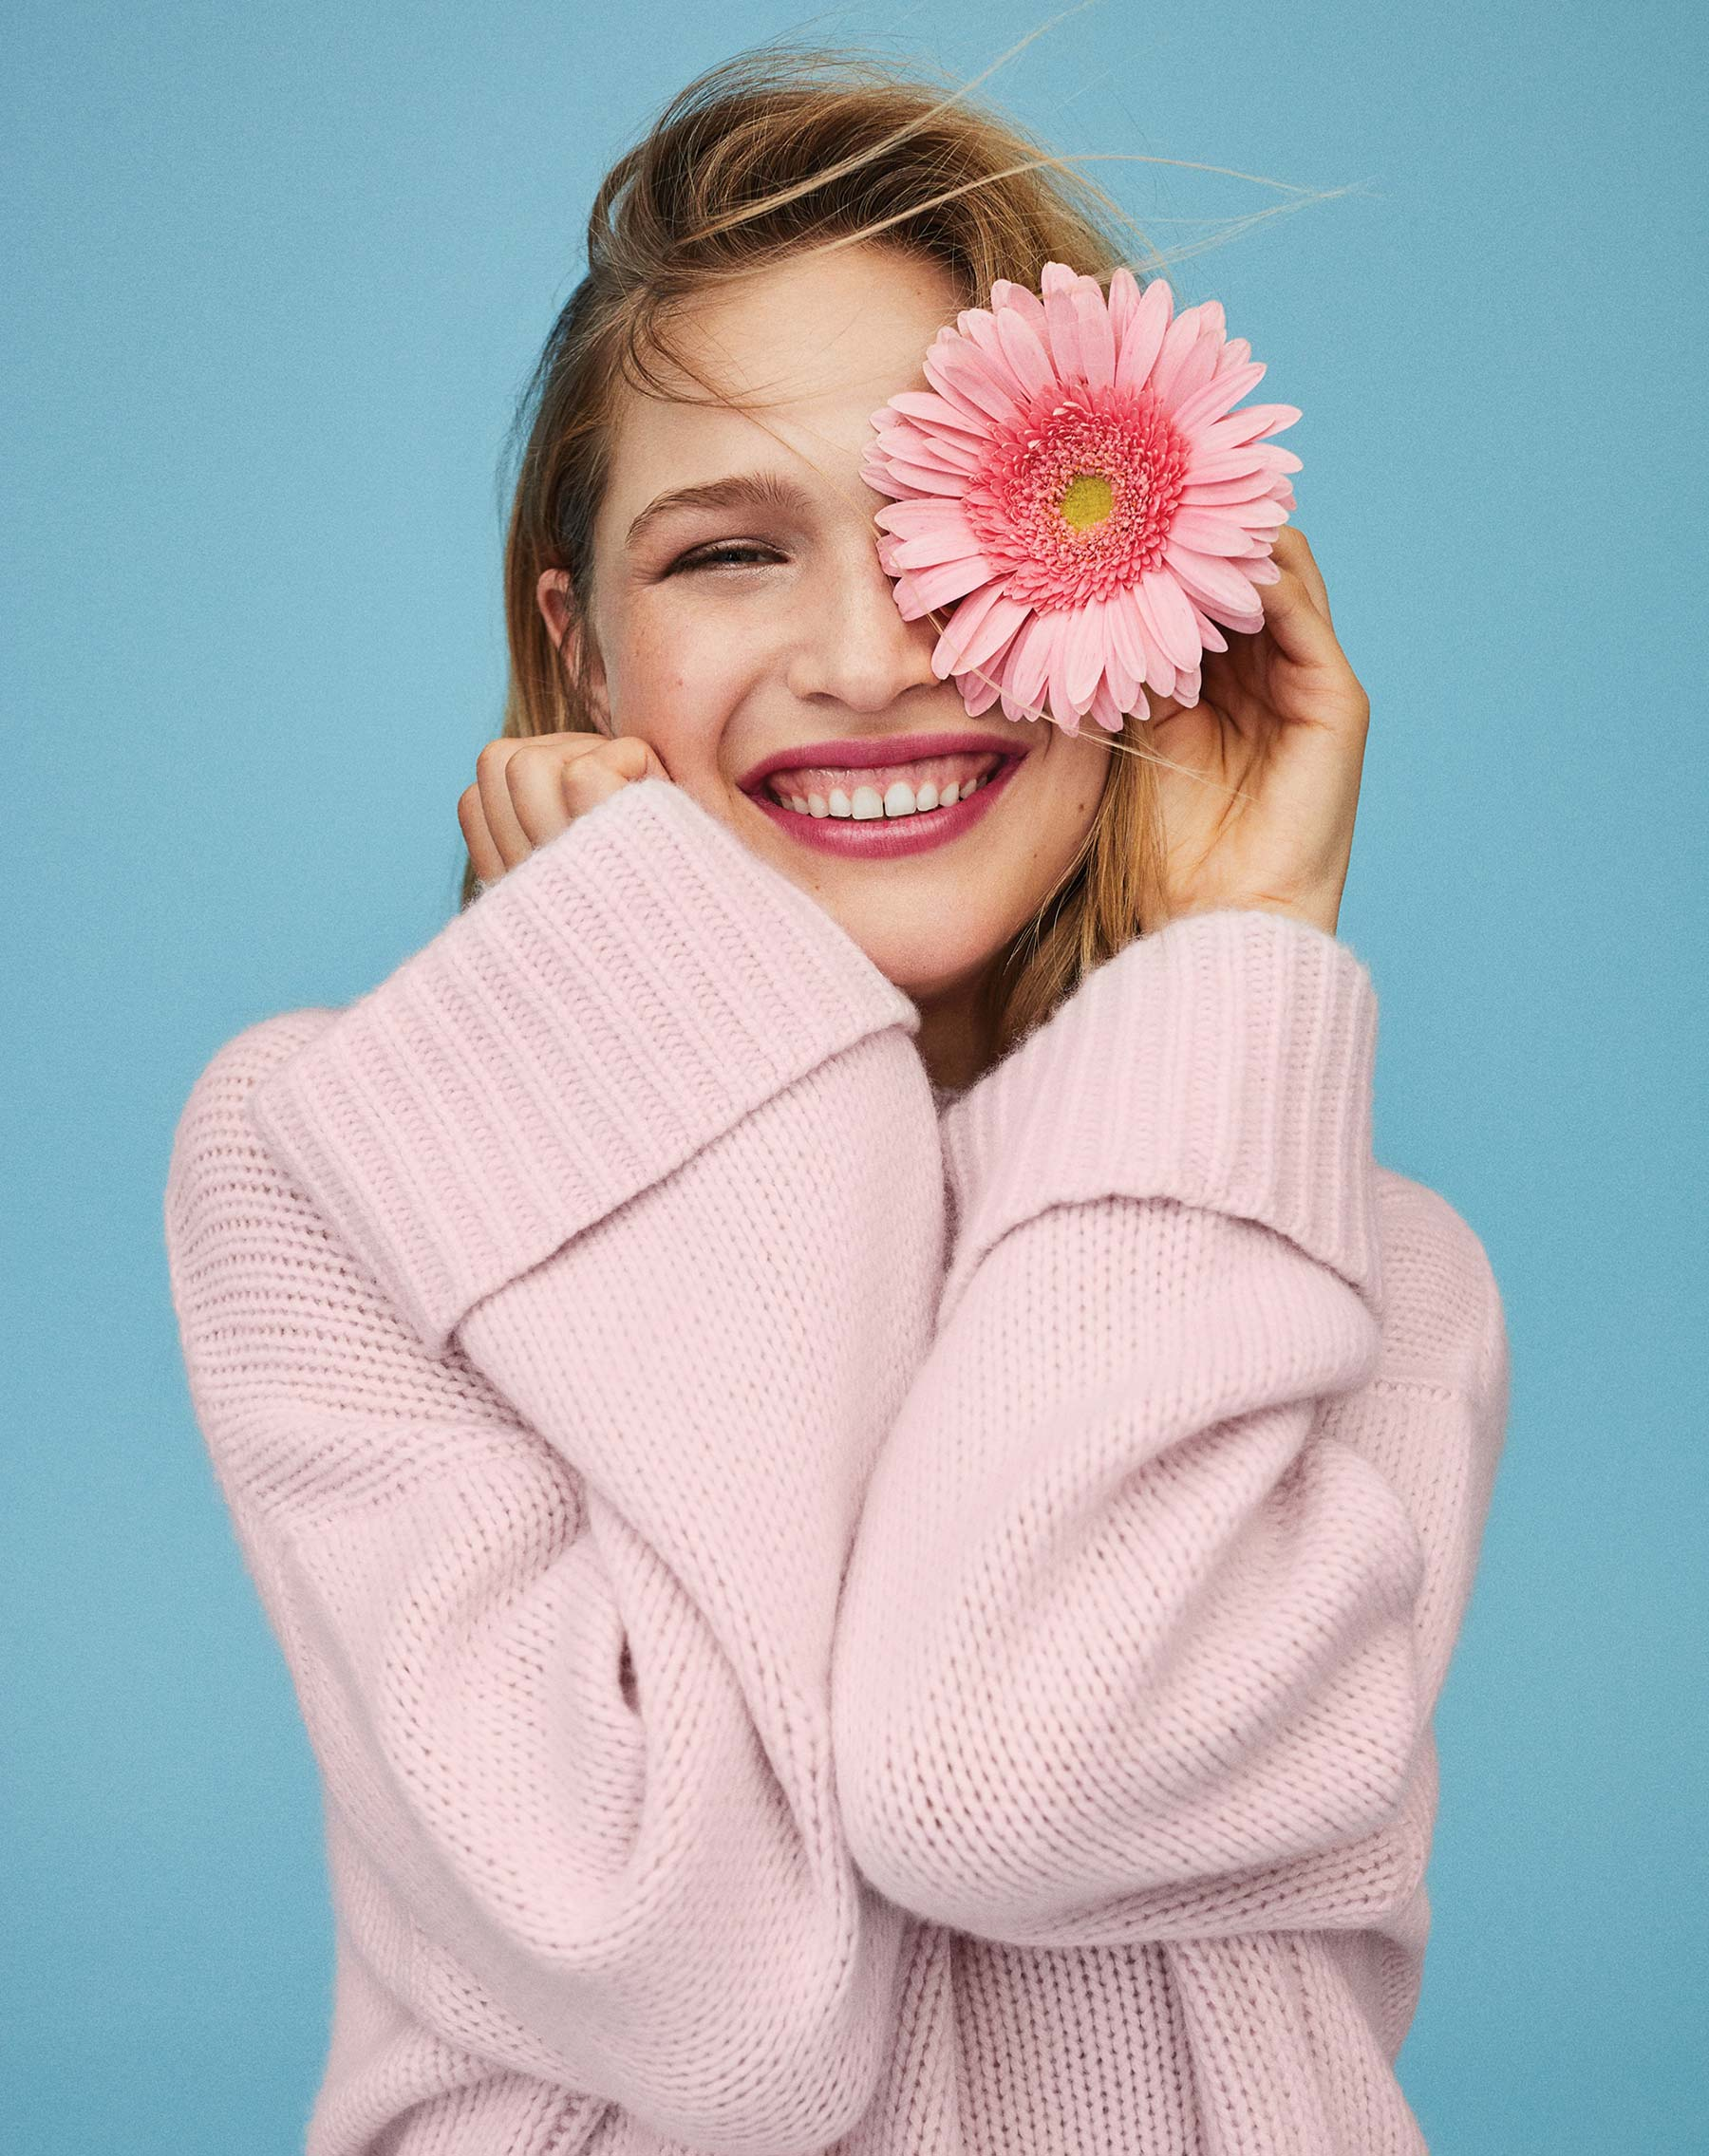 Youthful woman smiling and holding a flower over one eye